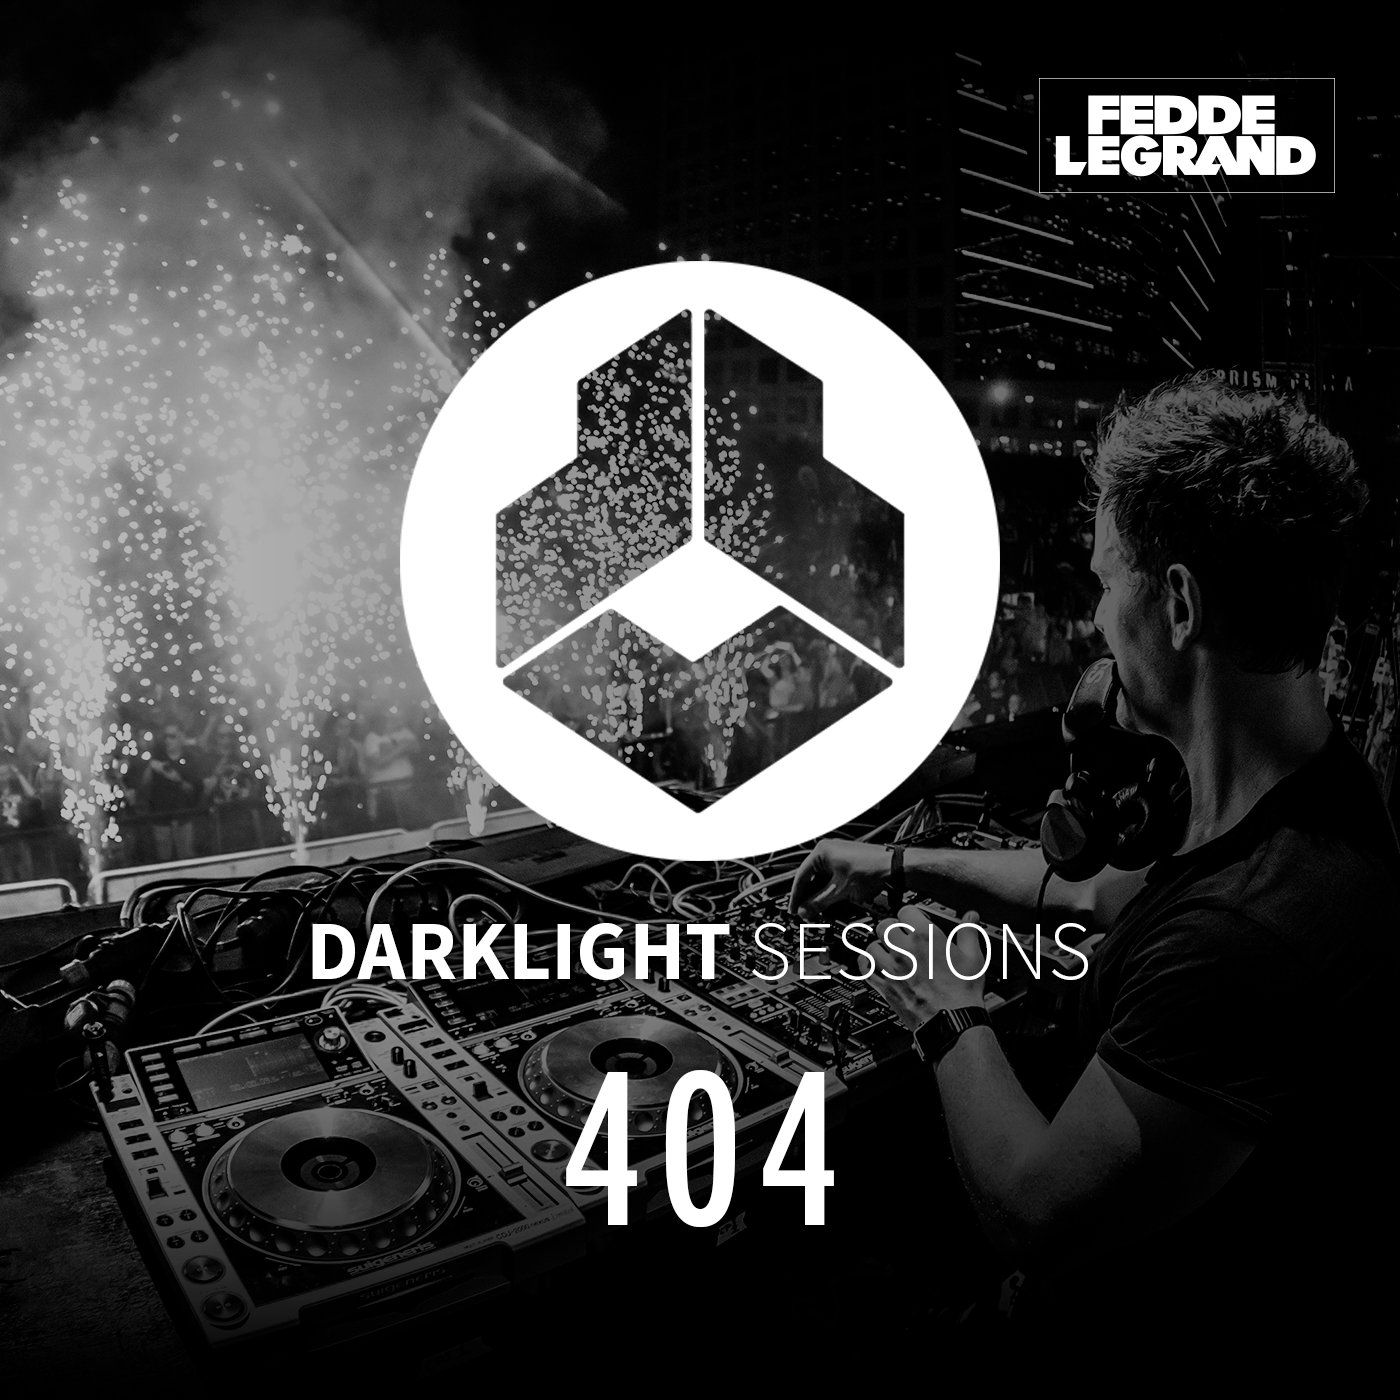 Darklight Sessions 404